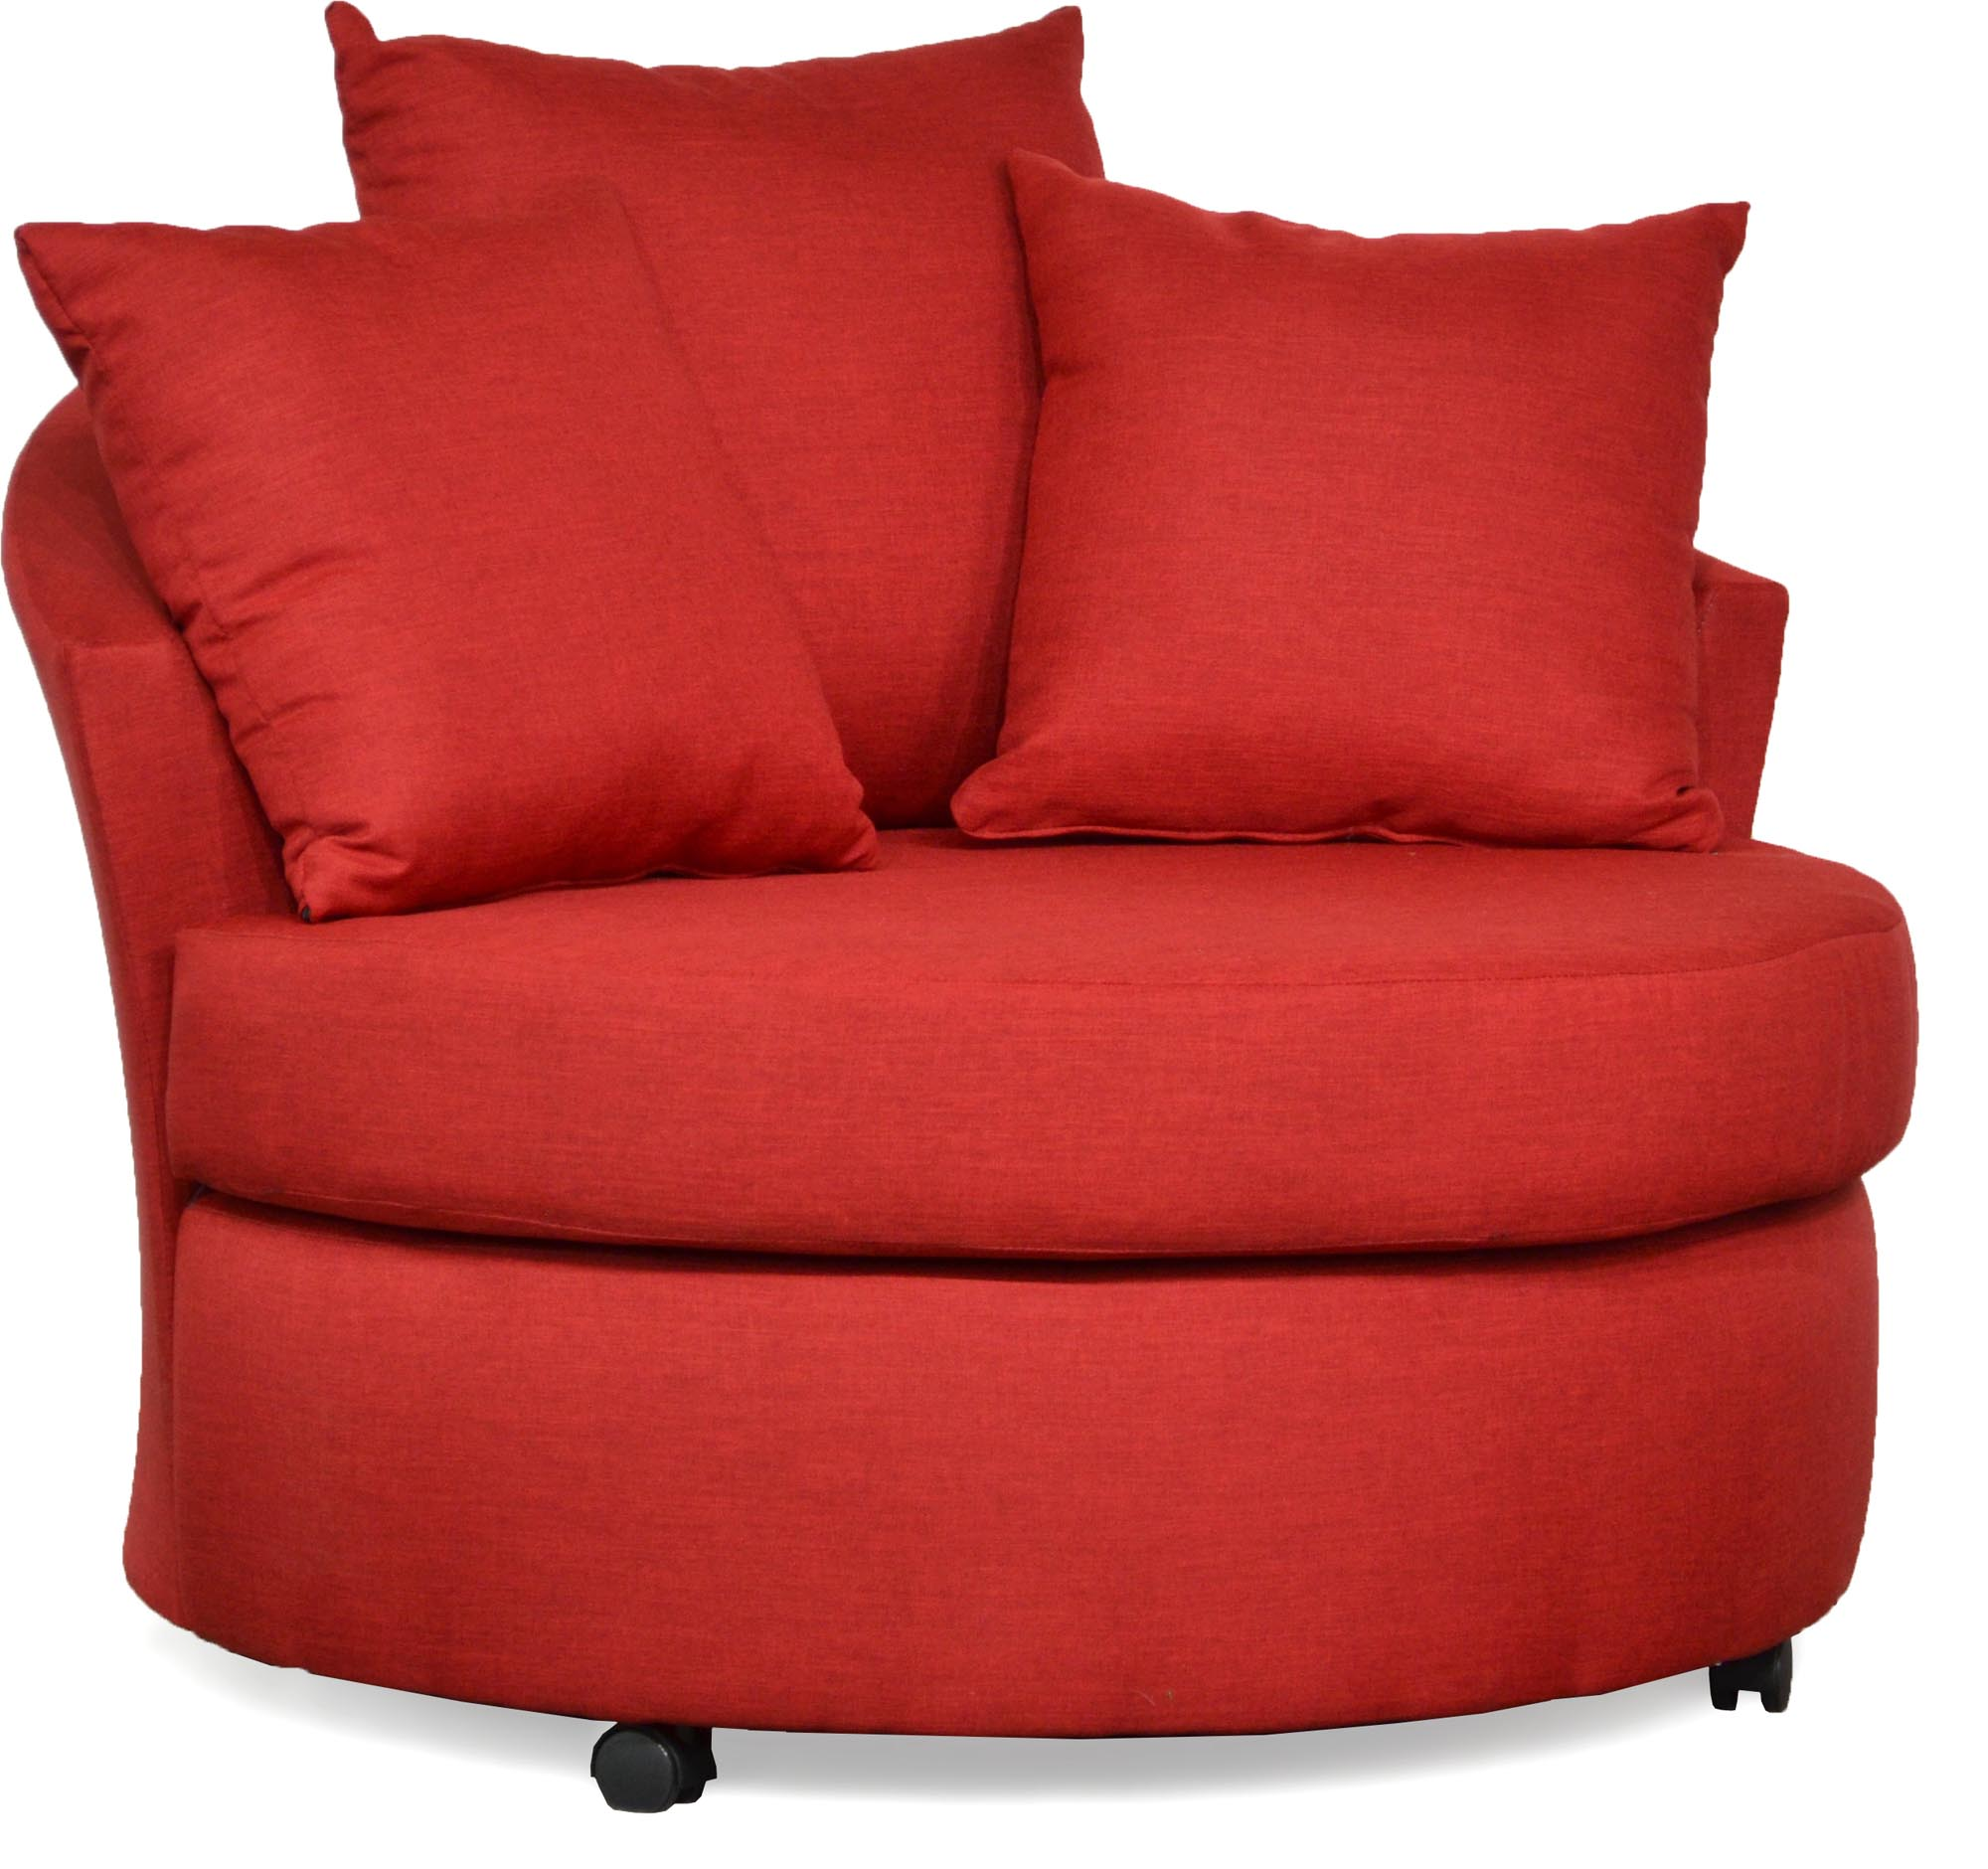 650 Swivel Circle Lounge Chair - Choice of Colors $359.9